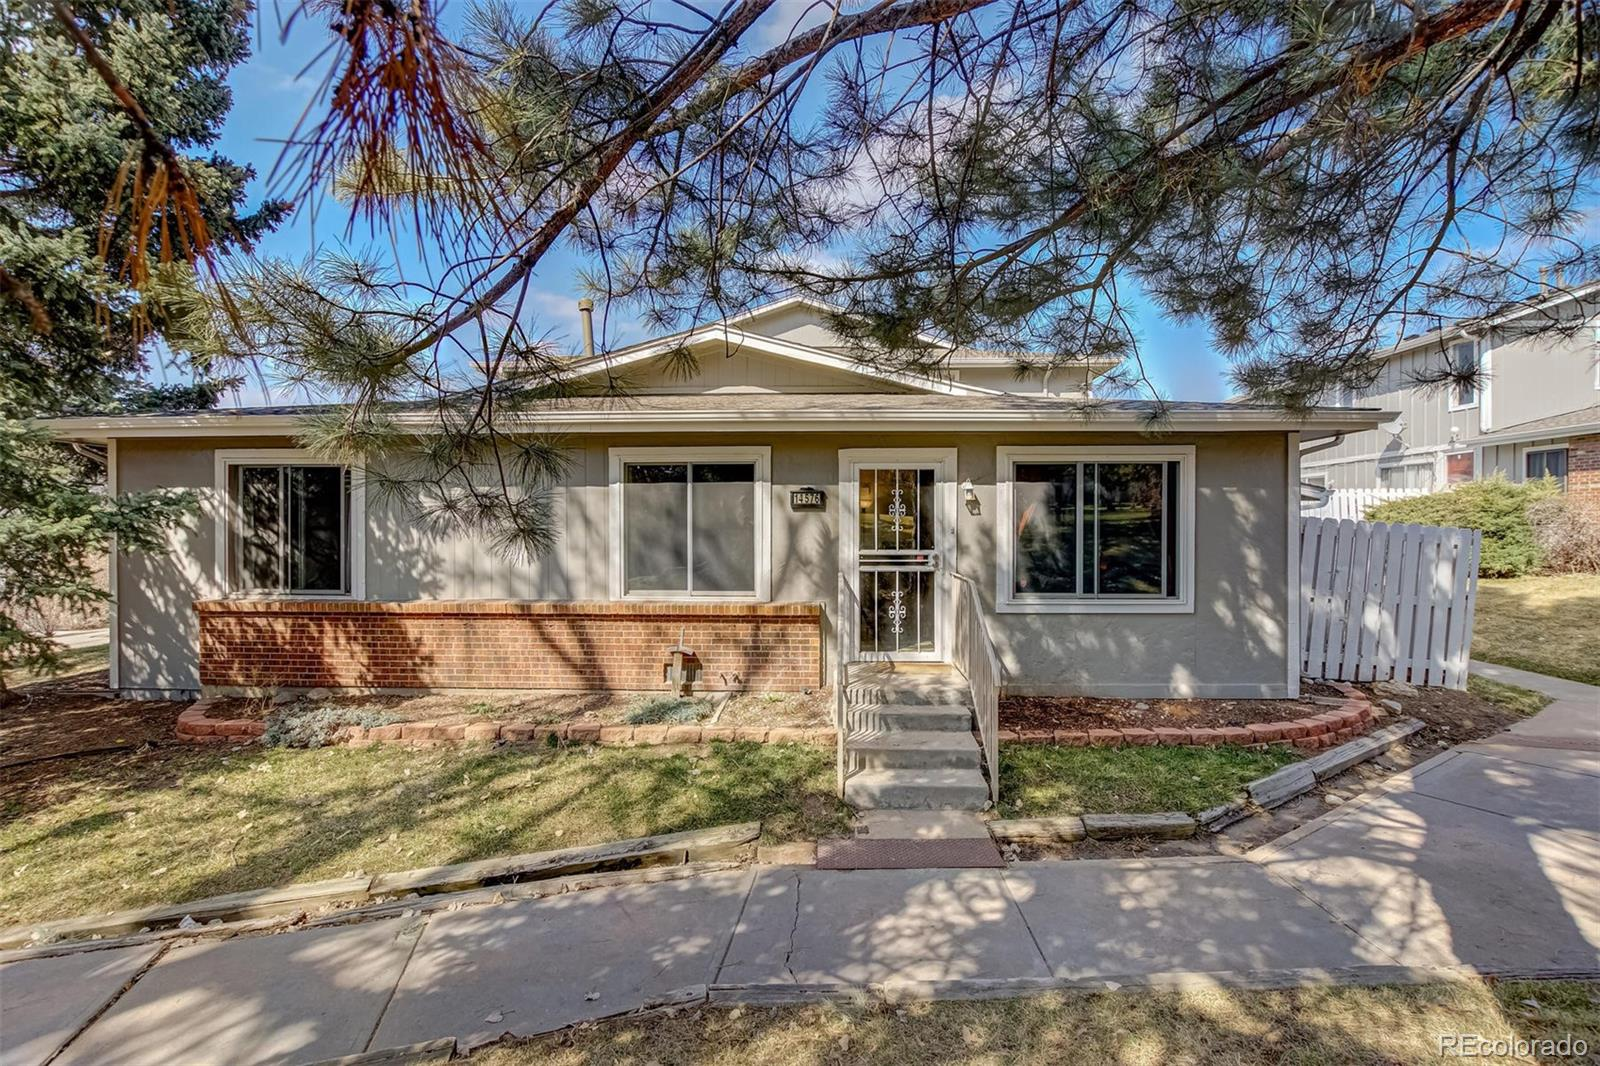 MLS# 7587510 - 1 - 14576 E 13th Avenue, Aurora, CO 80011